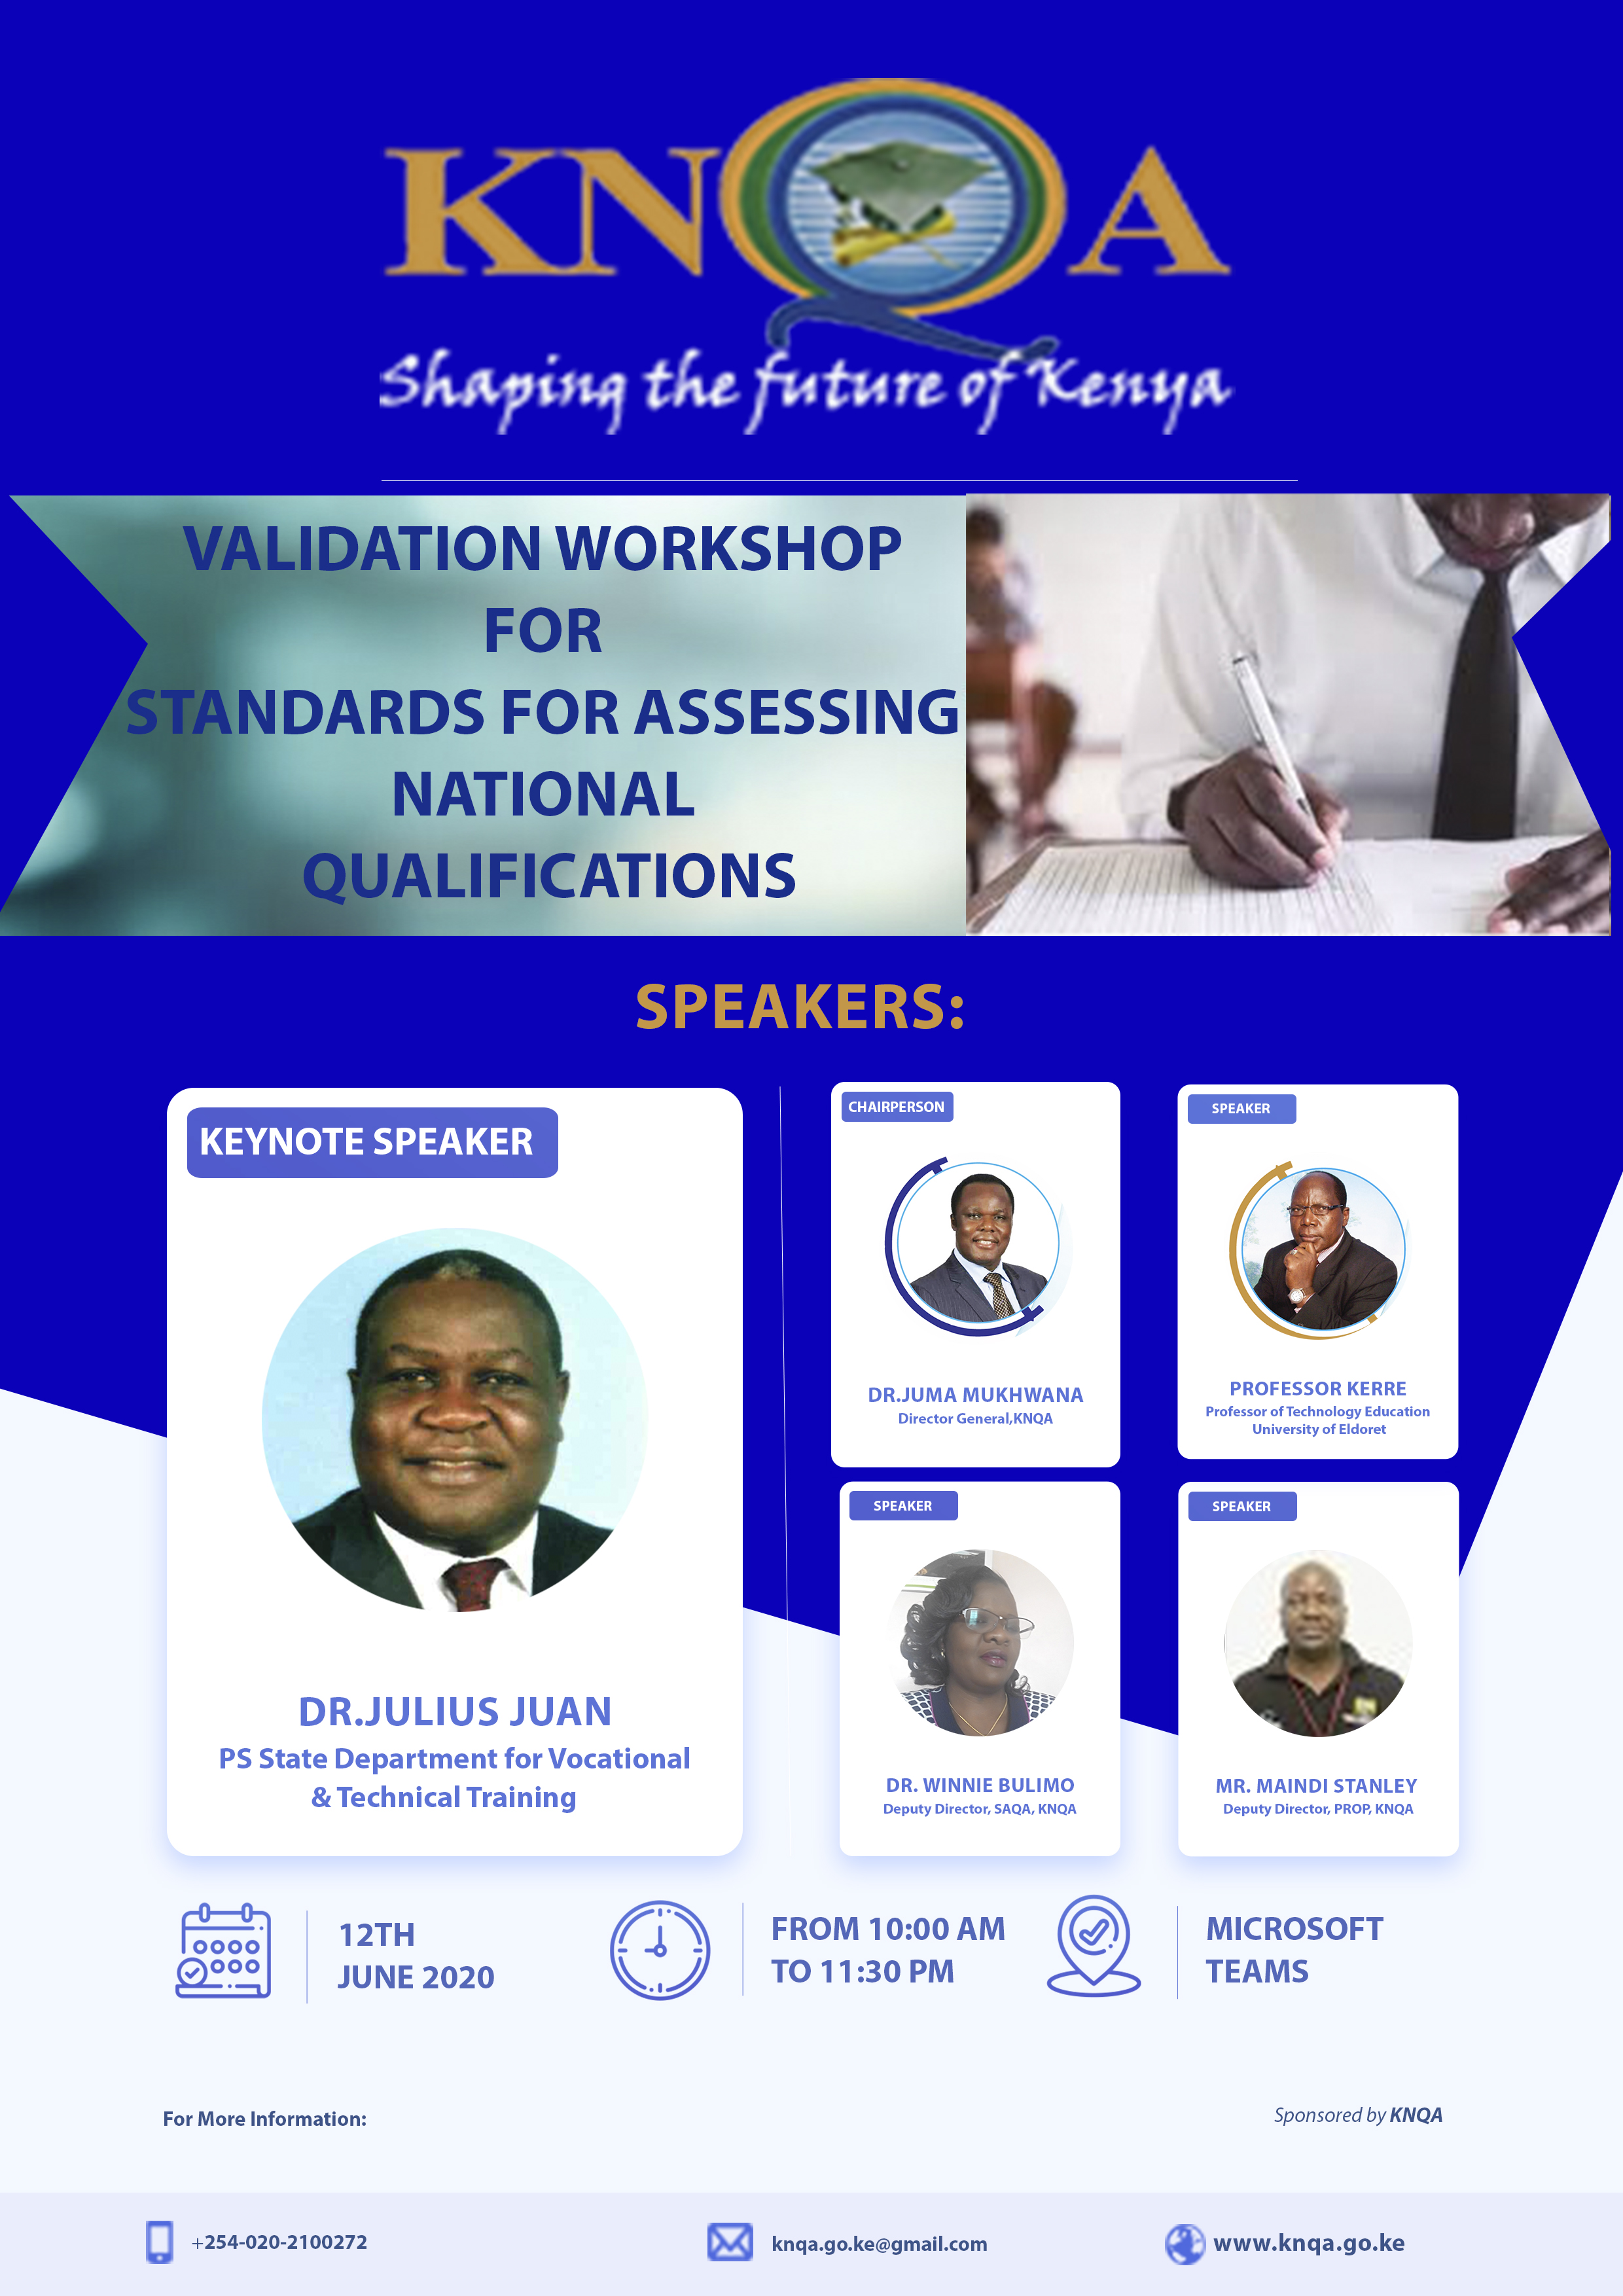 Validation Workshop for Standards for Assessing National Qualifications